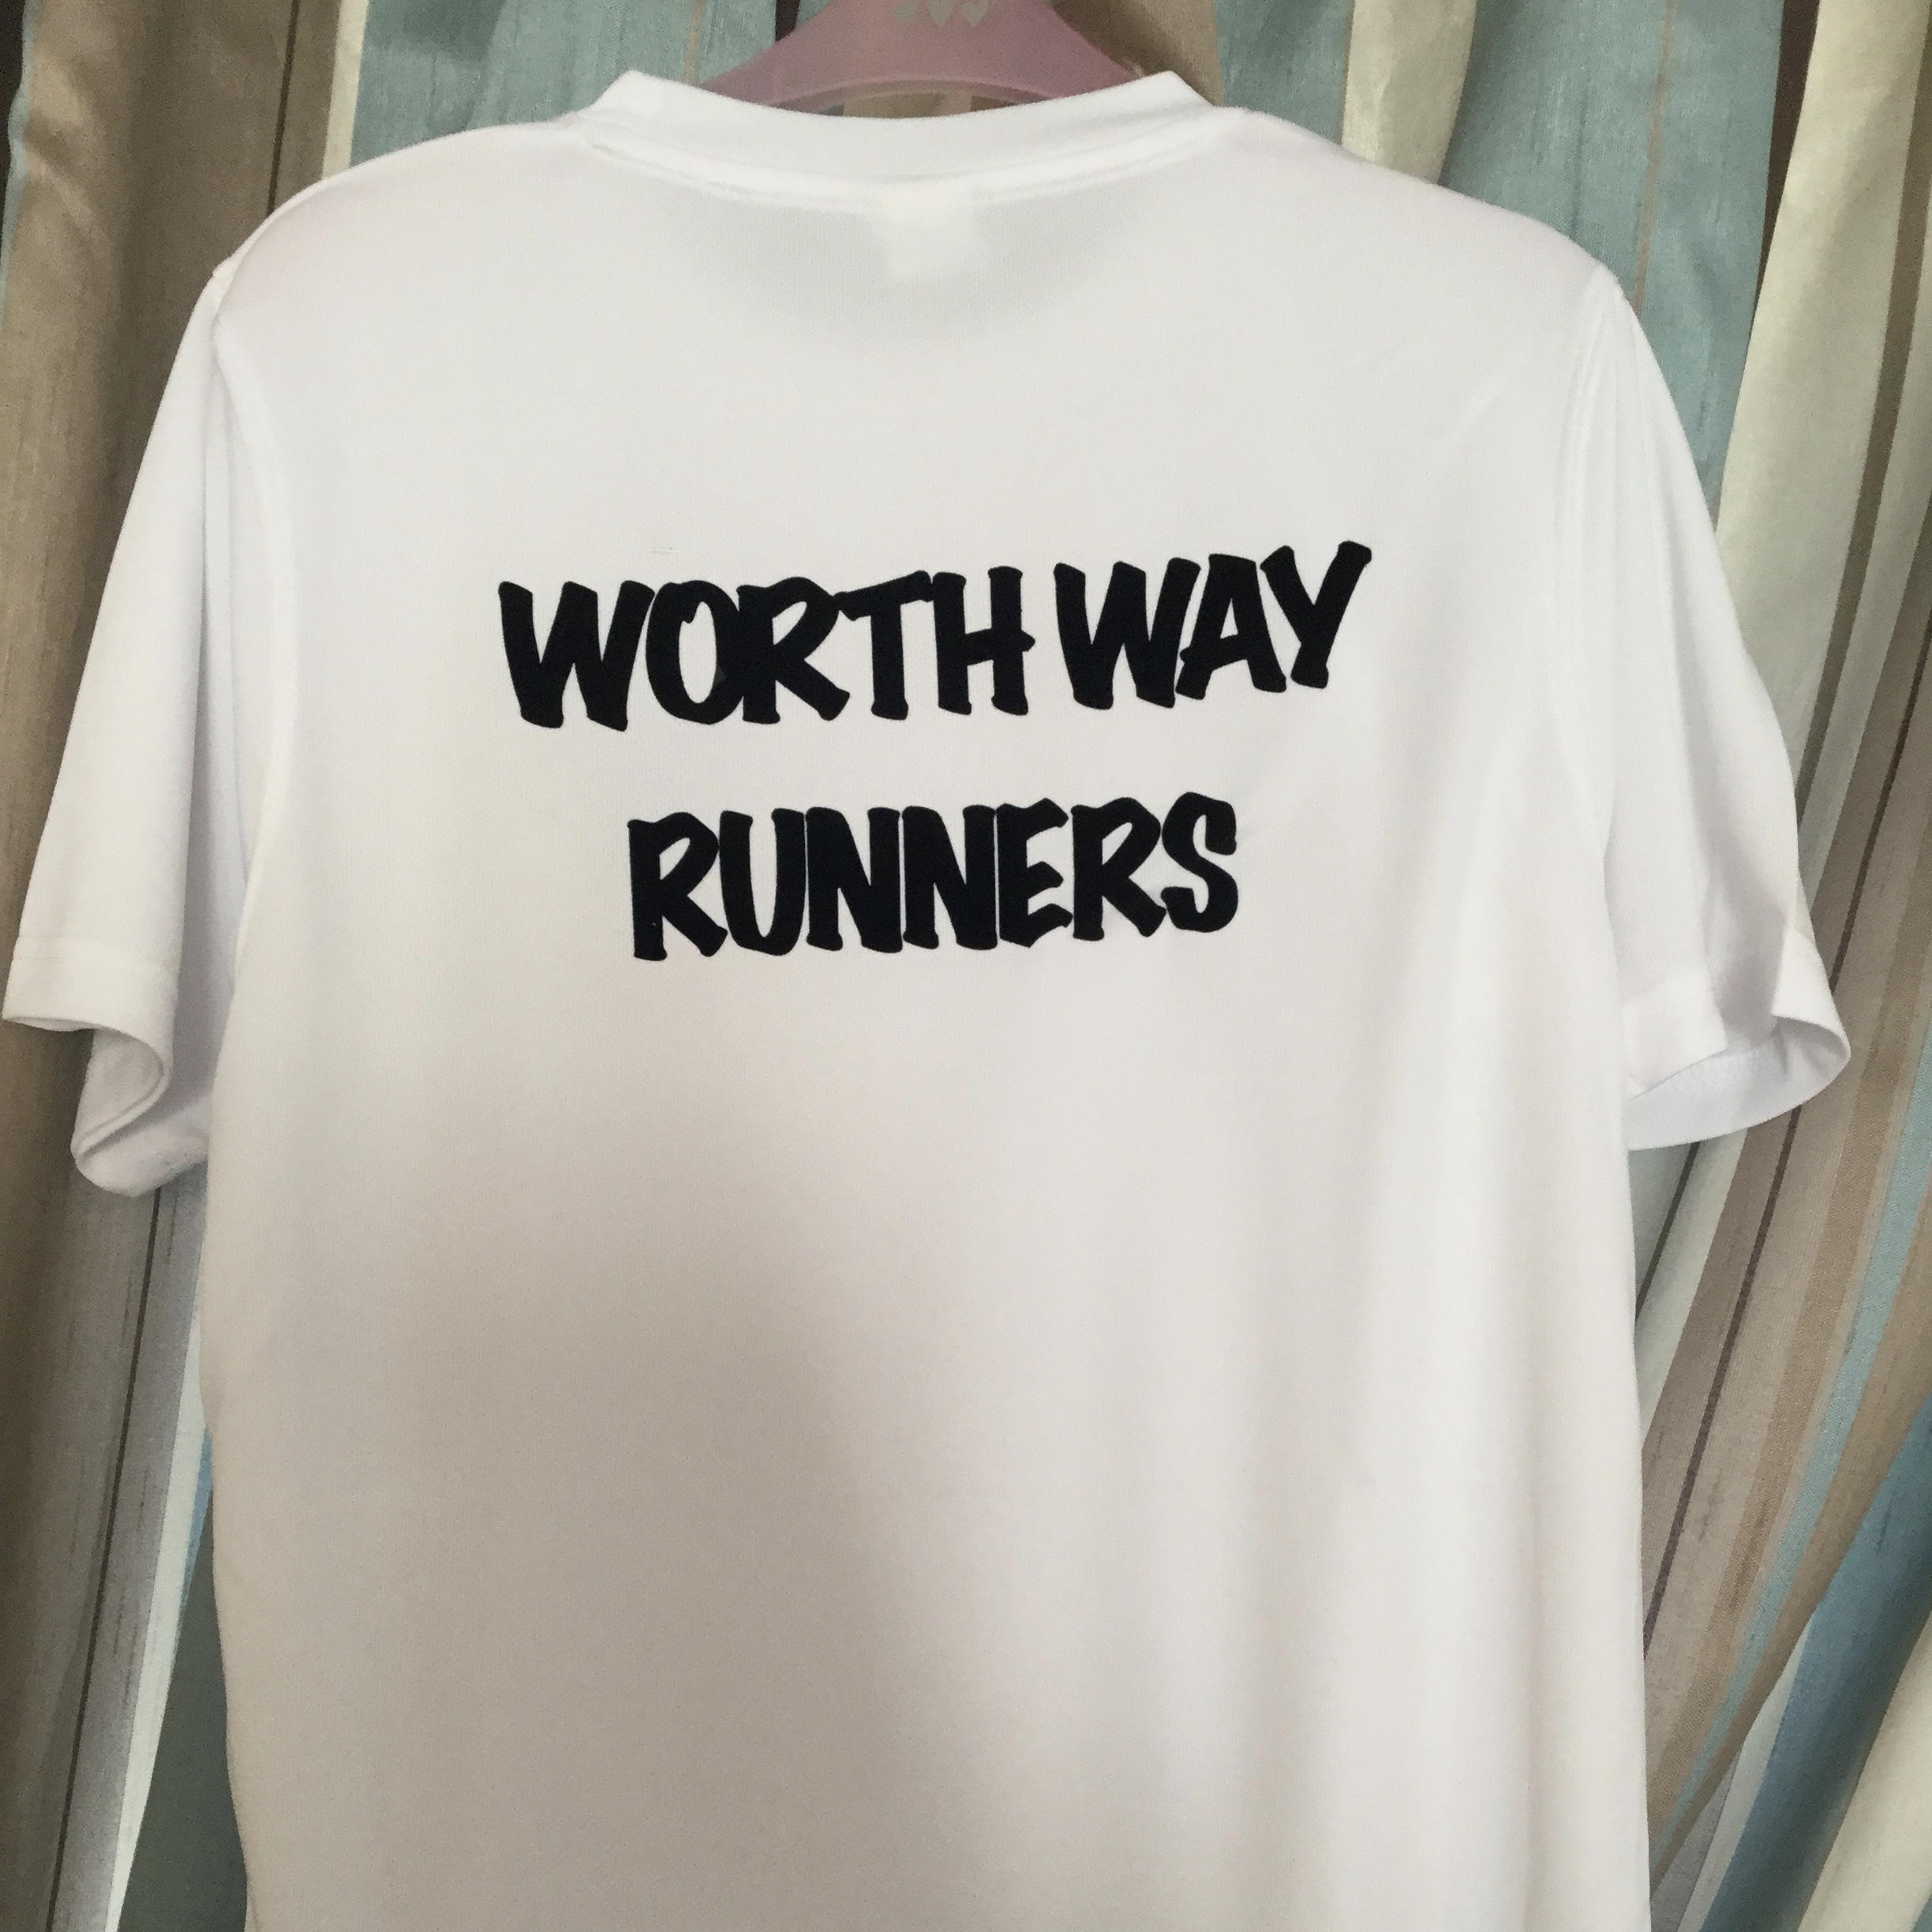 Worth Way Runners - Childrens Running Shirt